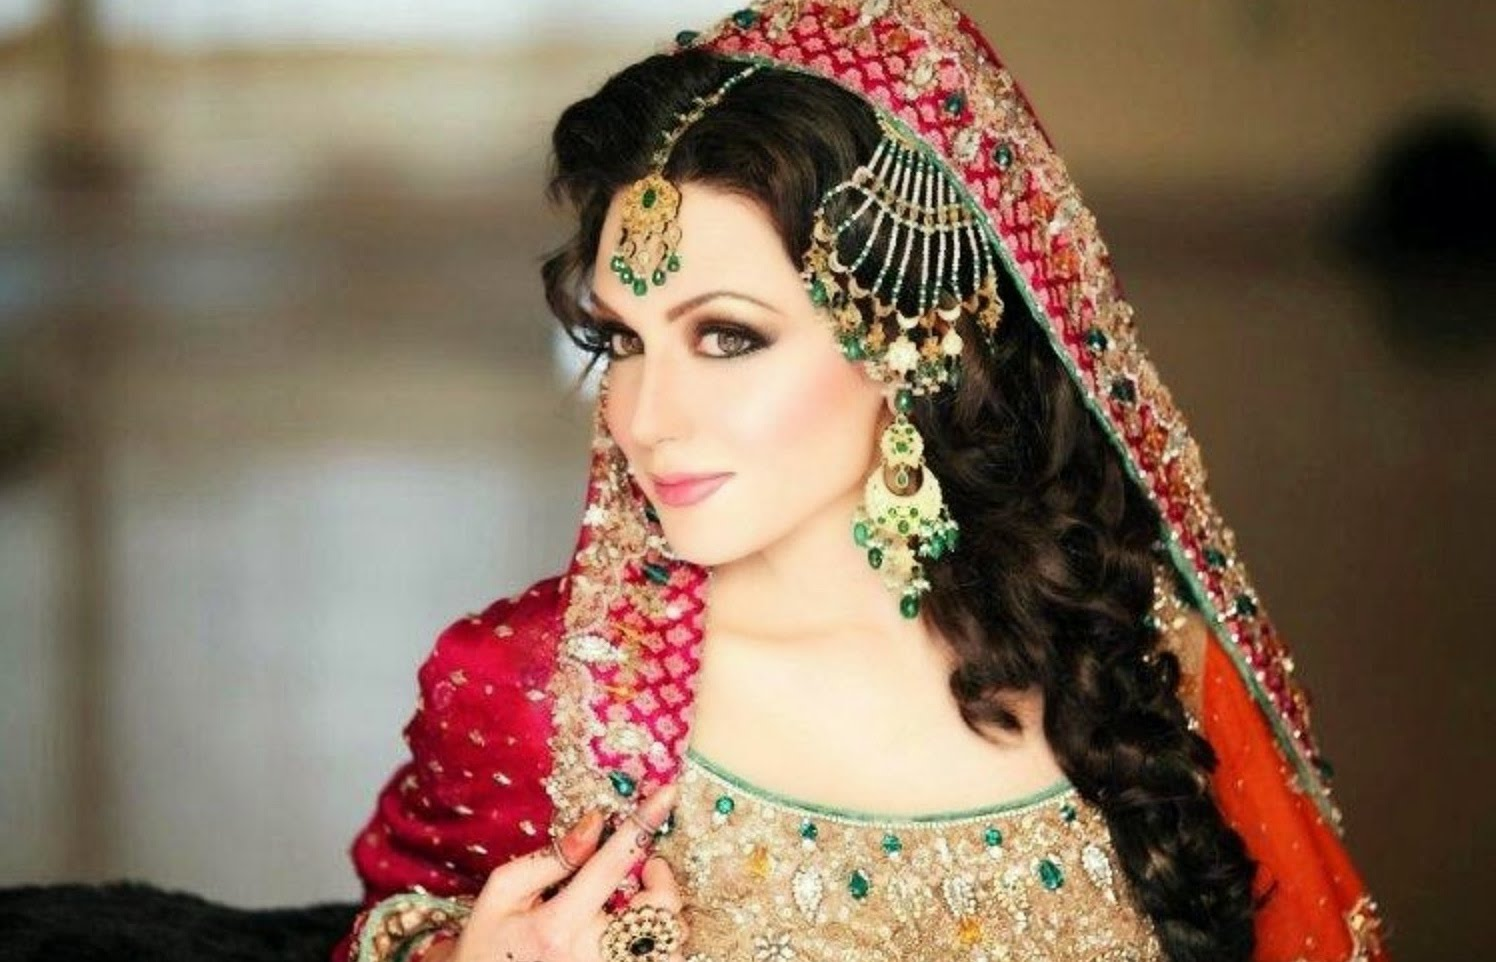 Top 10 Most Beautiful Pakistani Women In The World